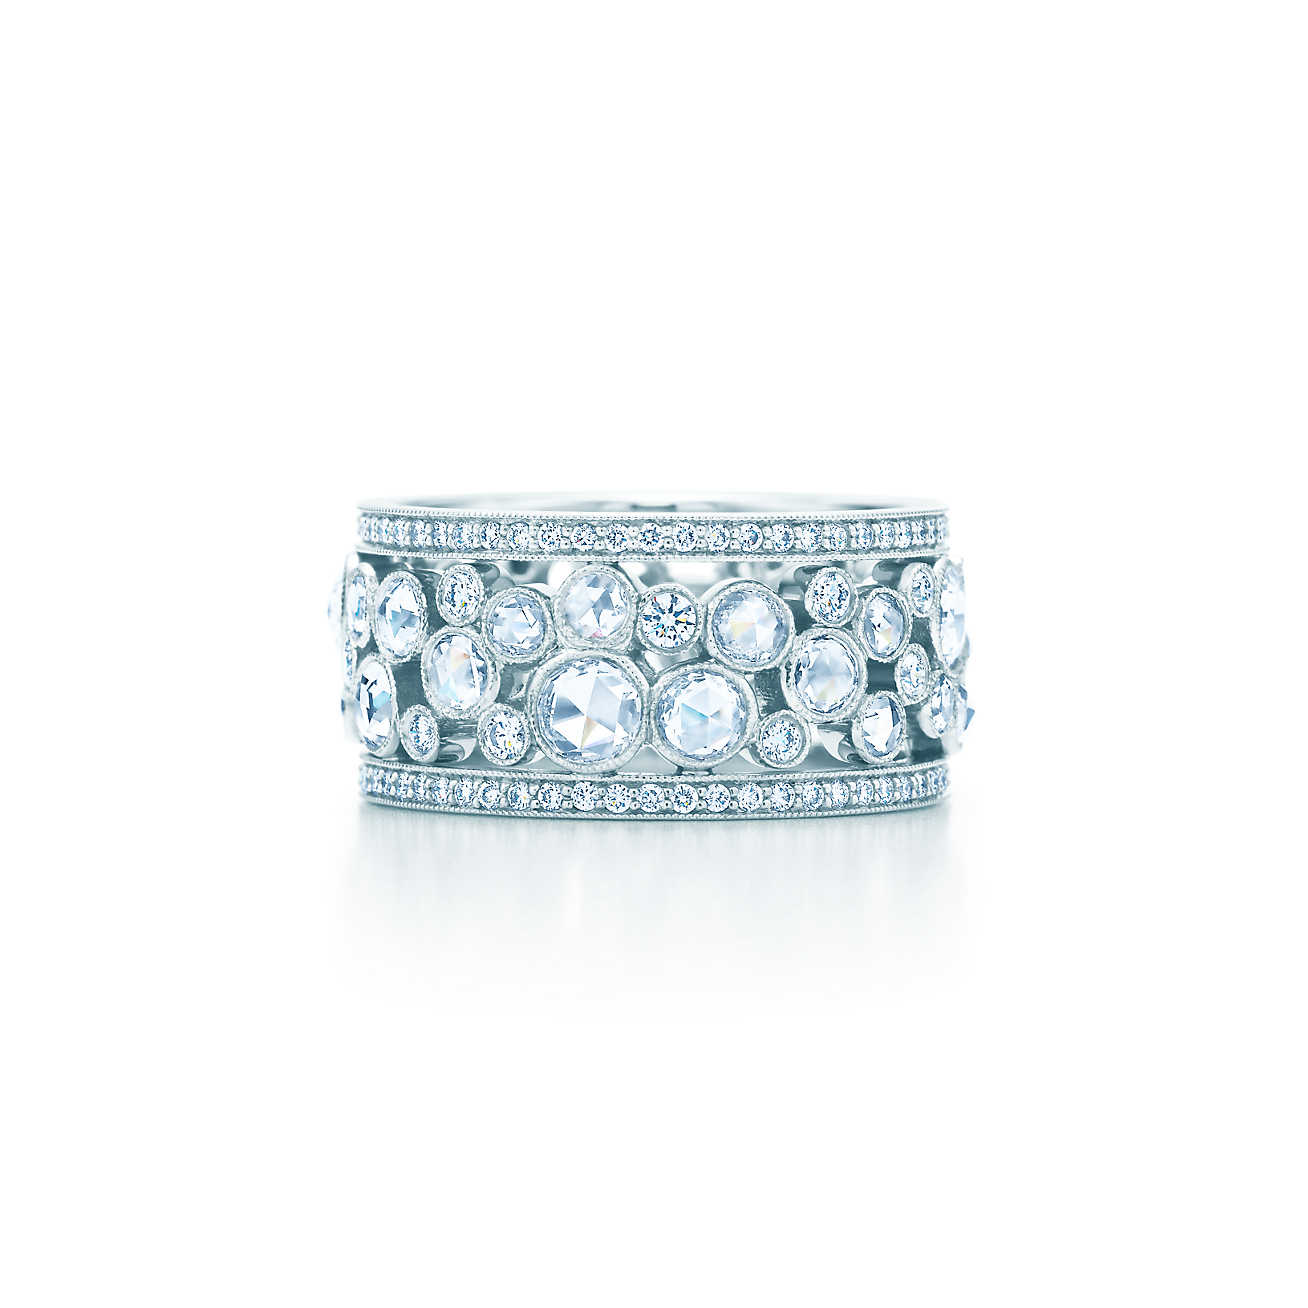 Tiffany Cobblestone Band Ring Image